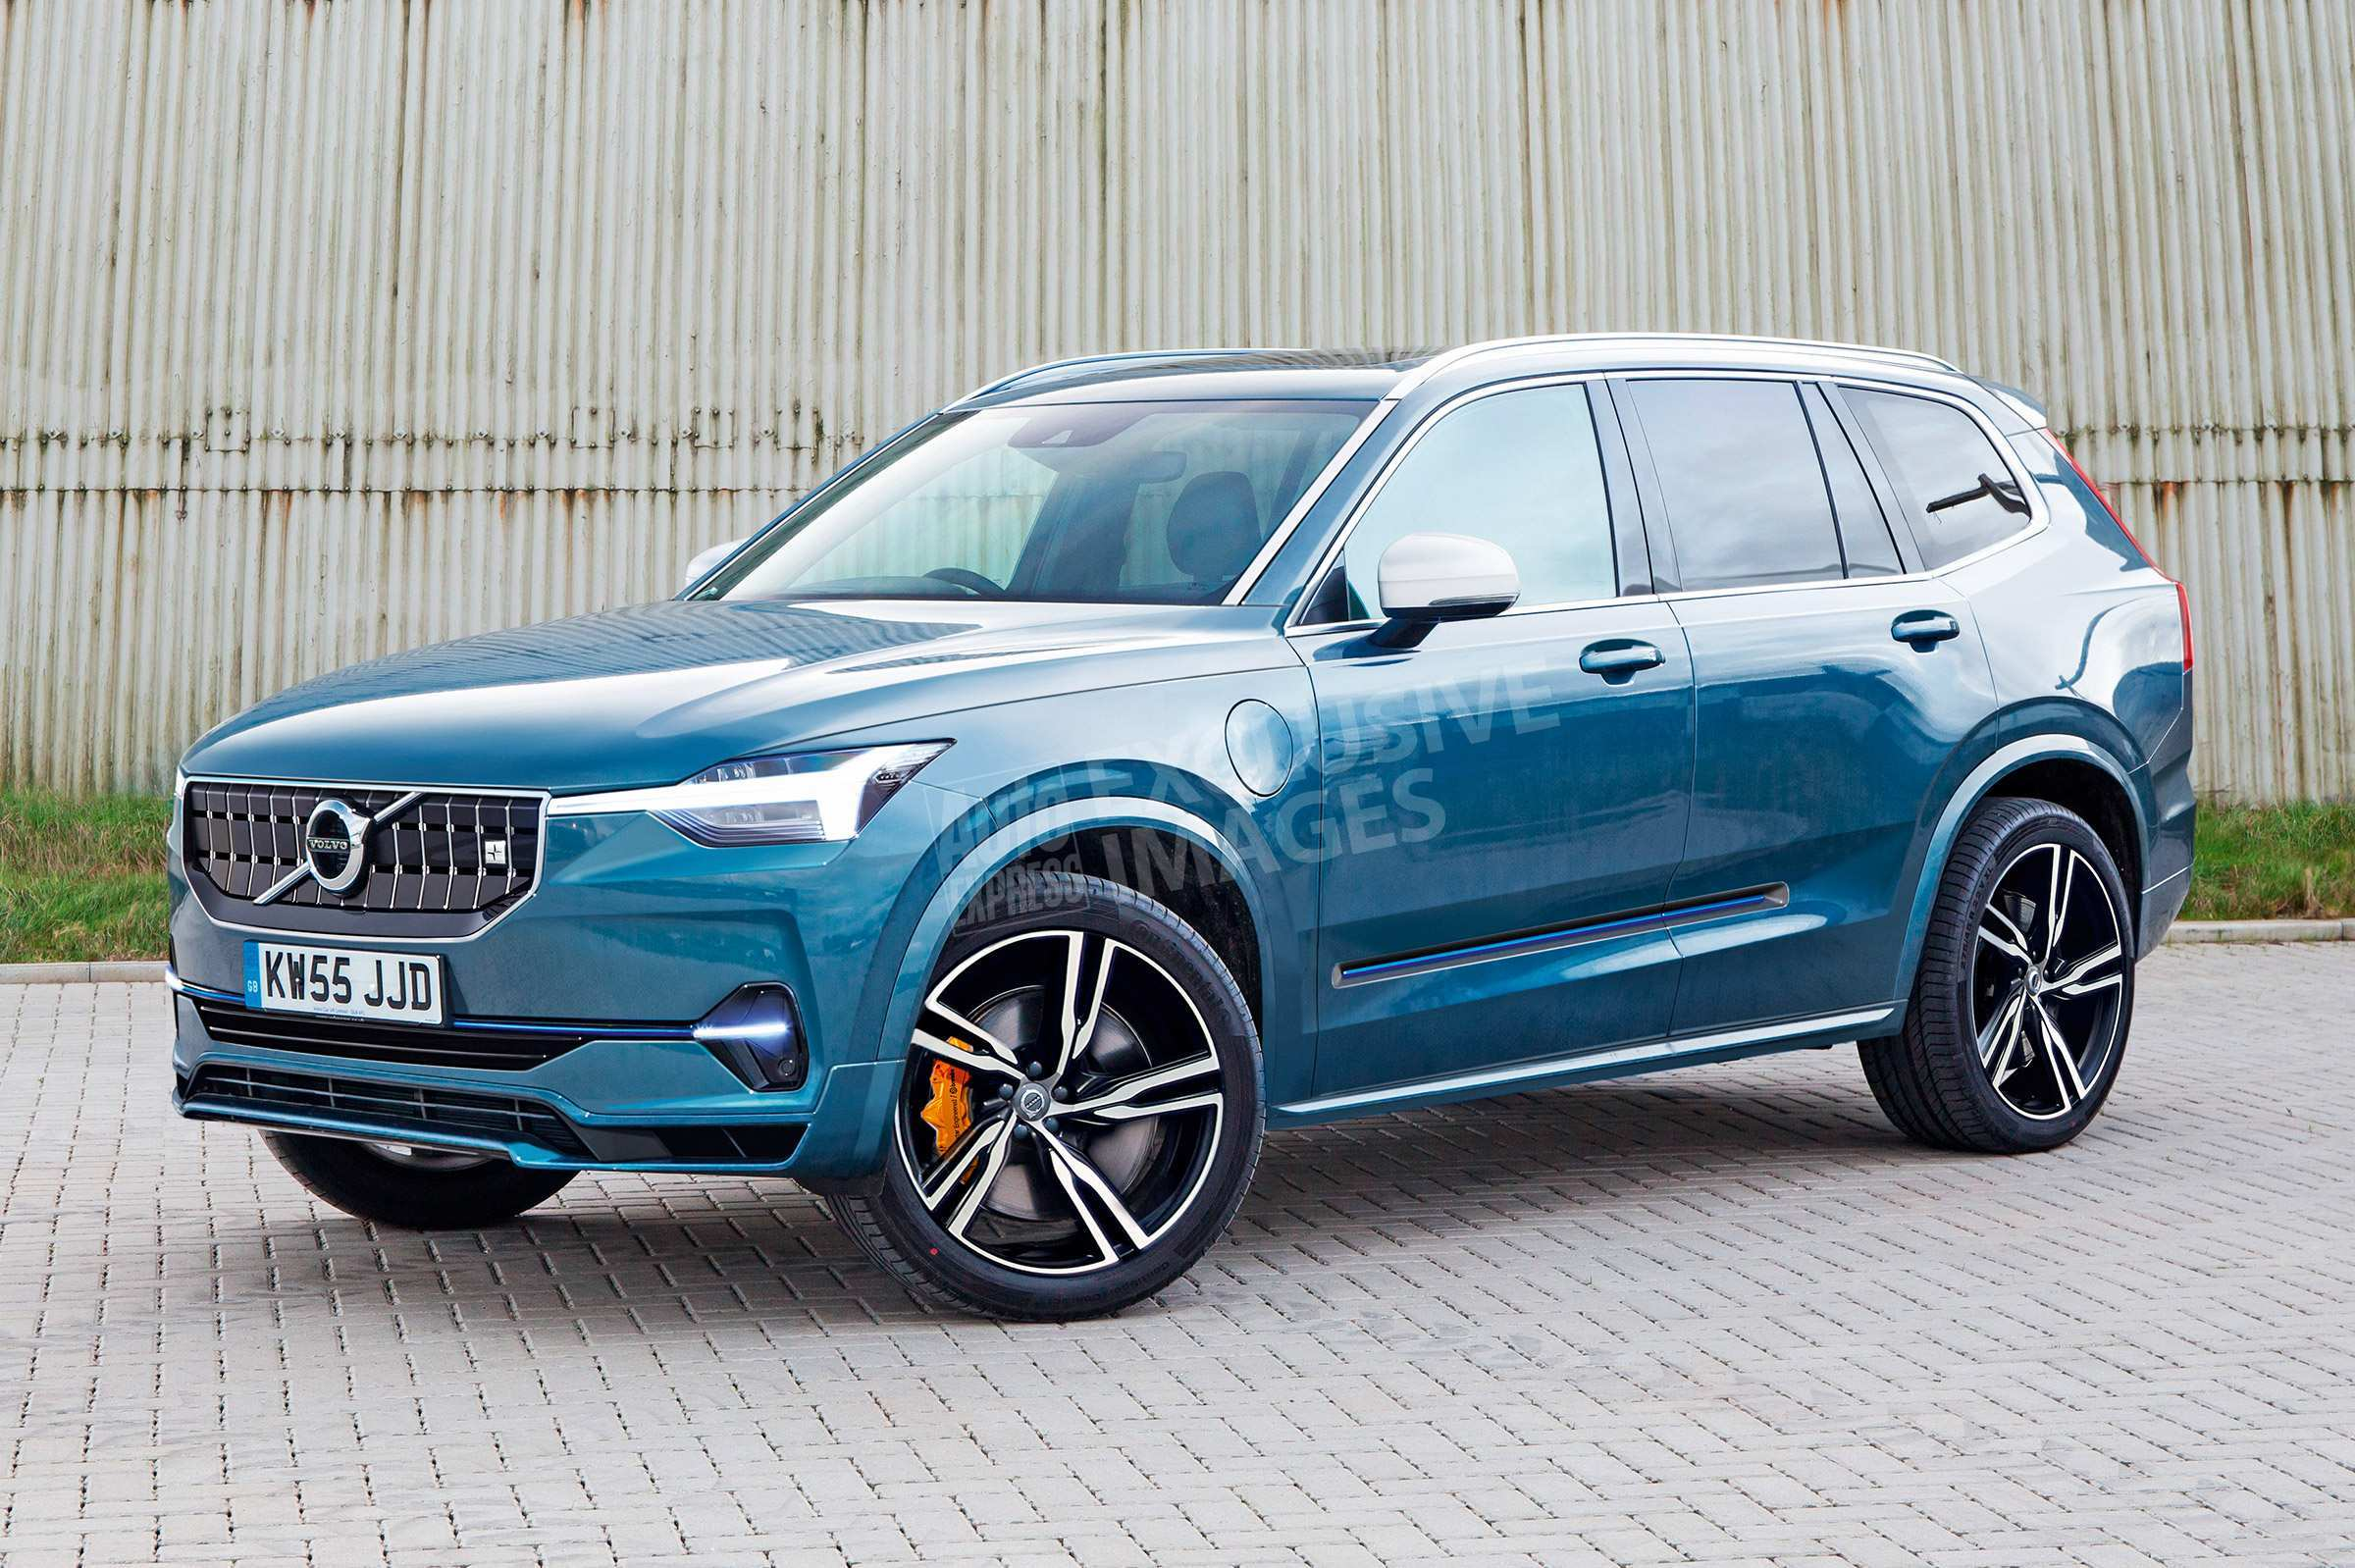 90 The Volvo Xc90 Facelift 2019 Price with Volvo Xc90 Facelift 2019